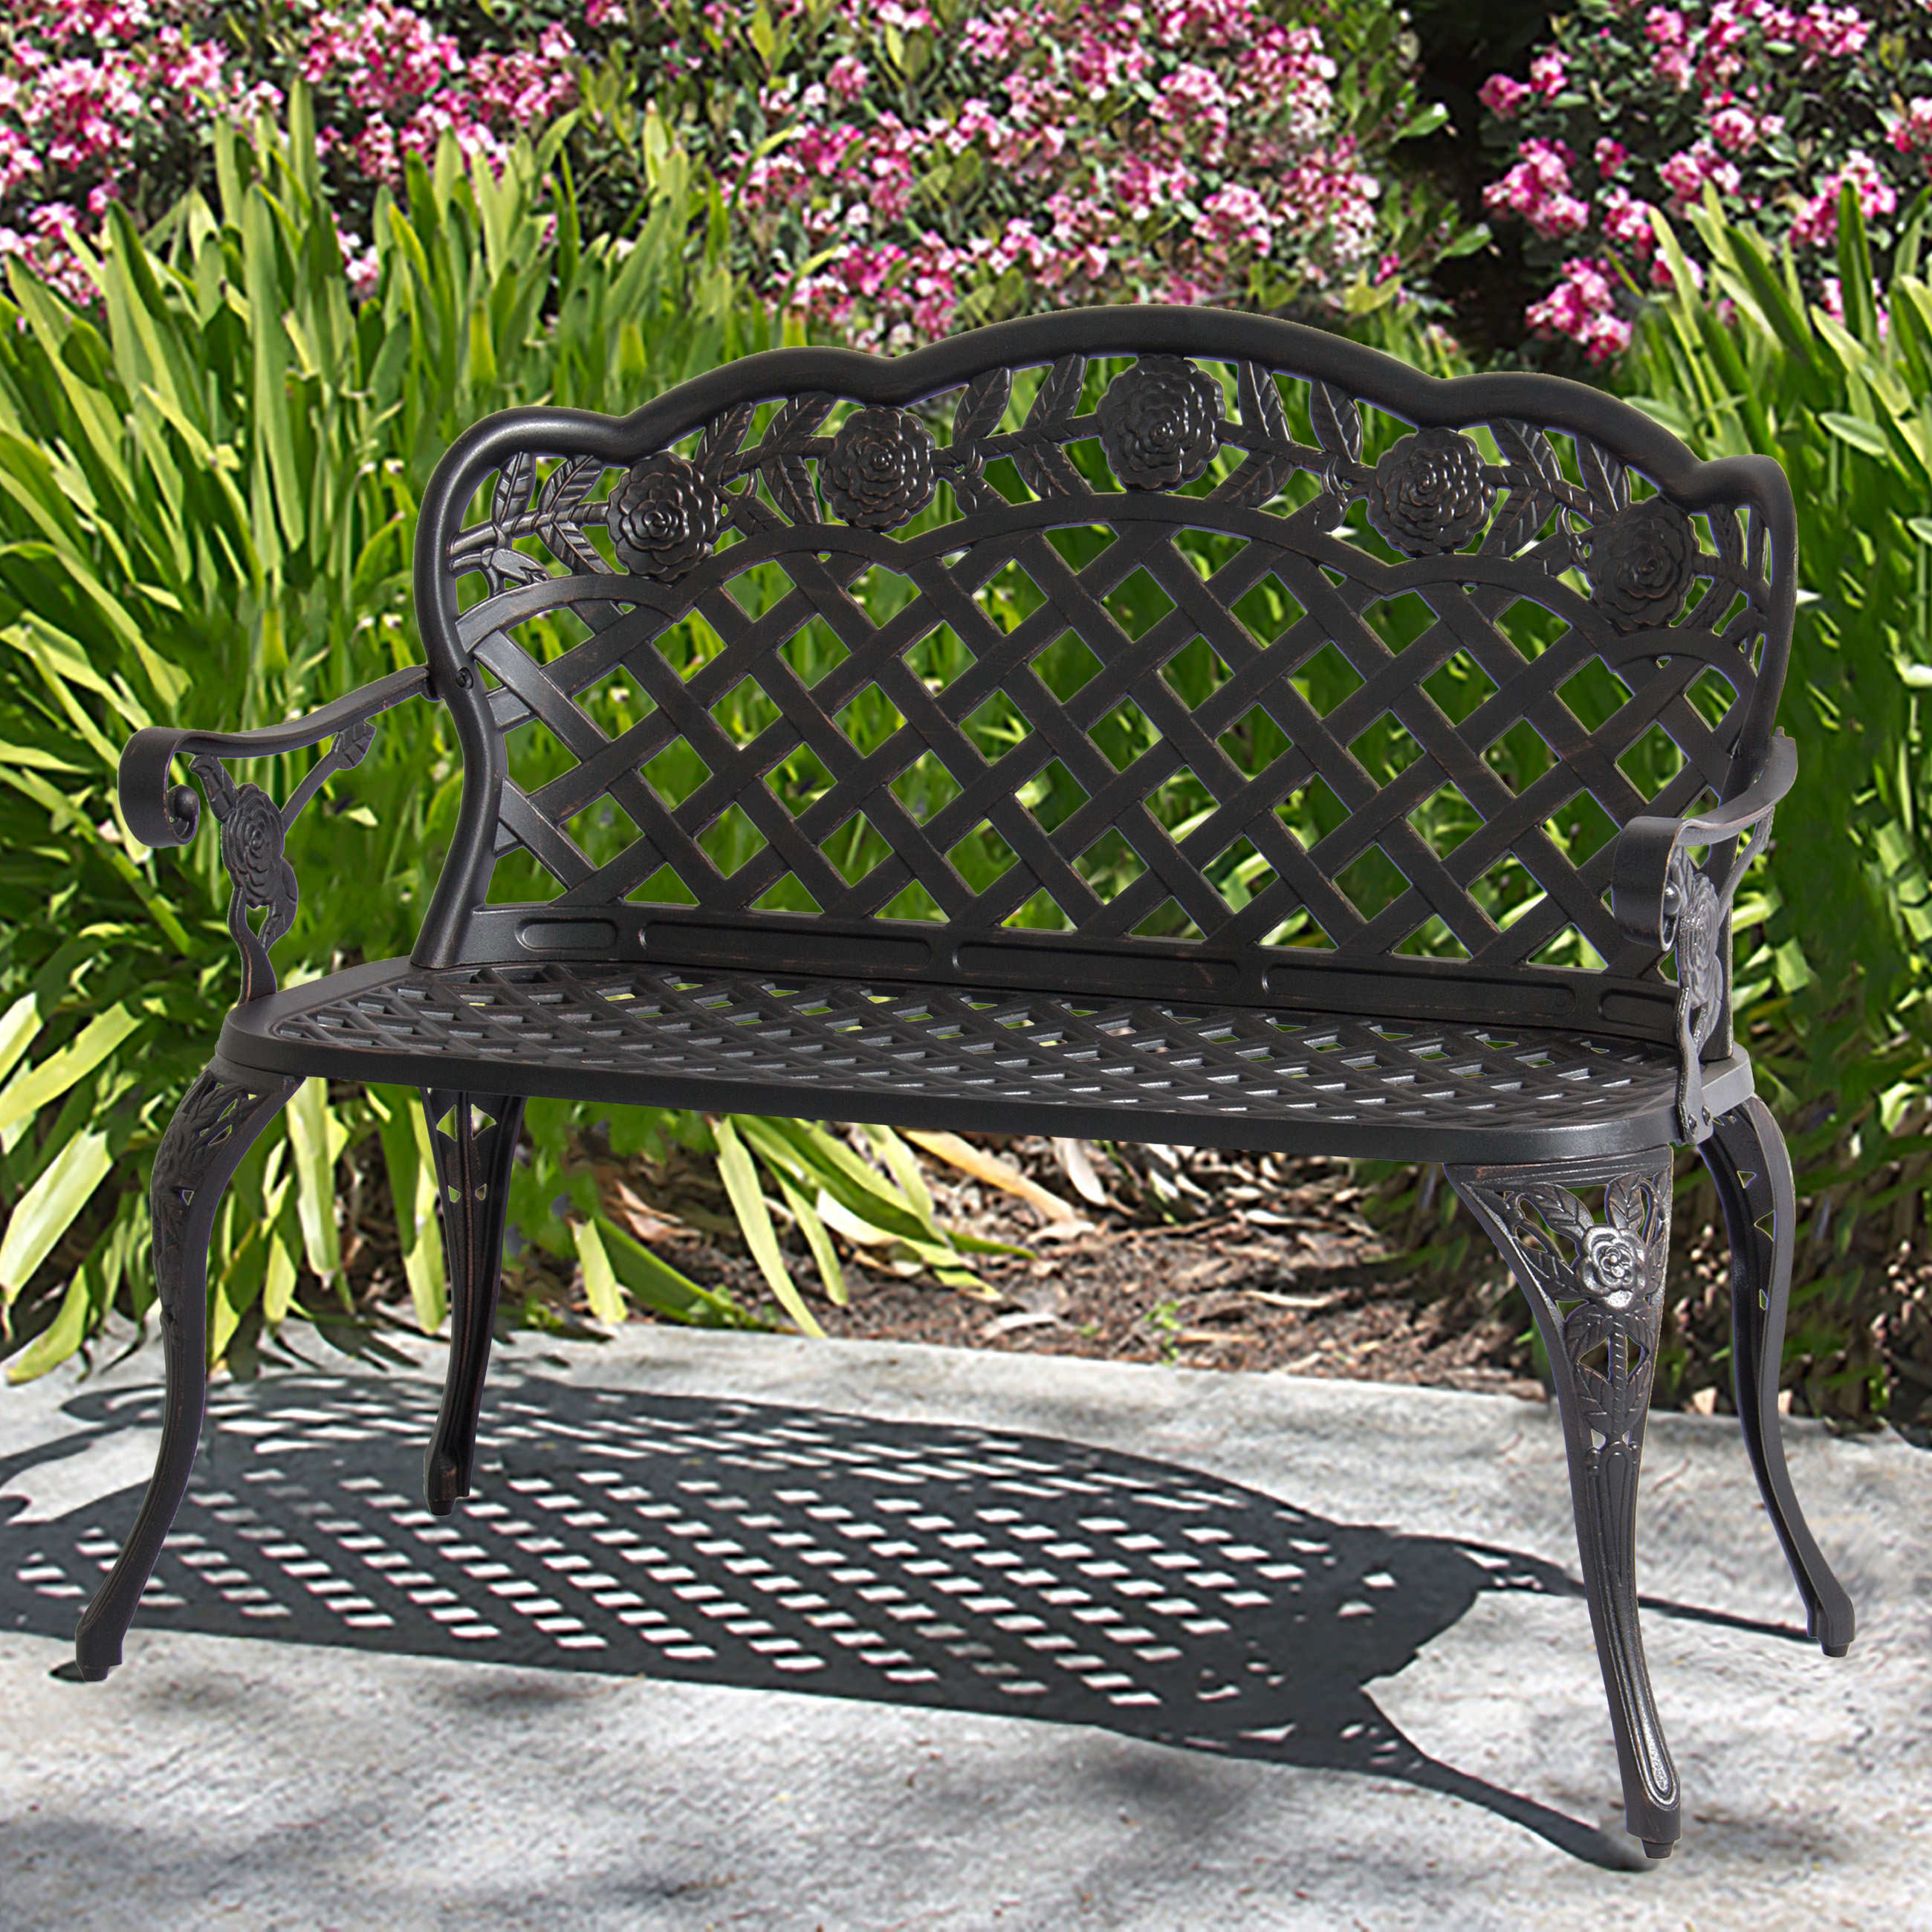 Patio Garden Bench Cast Aluminum Outdoor Garden Yard Solid